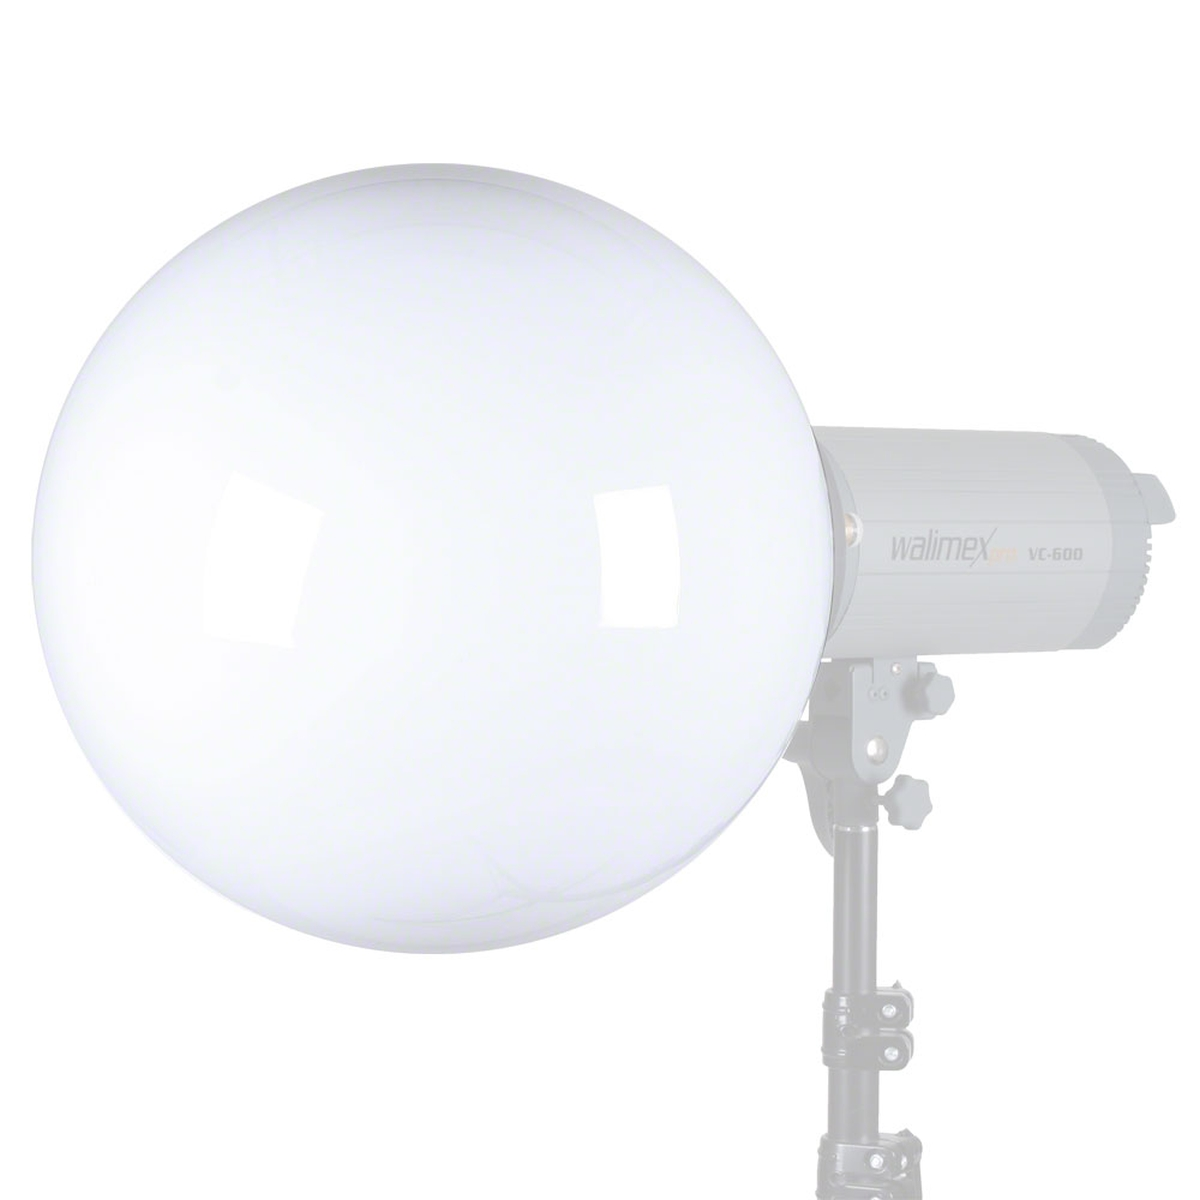 Walimex Spherical Diffuser, 30cm Electra Small